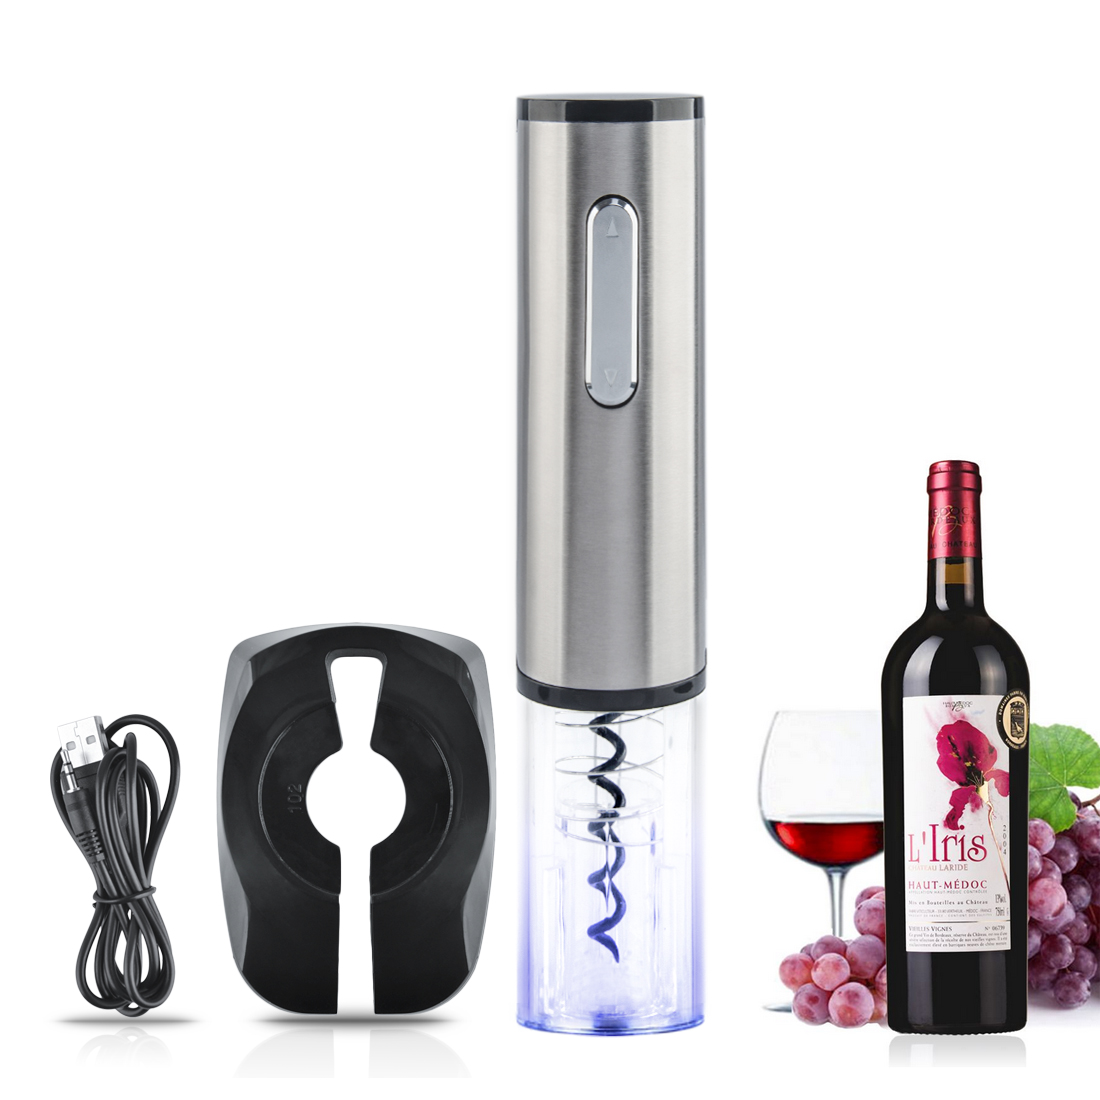 Homestia New Rechargeable Electric Wine Opener Kit Automatic Wine